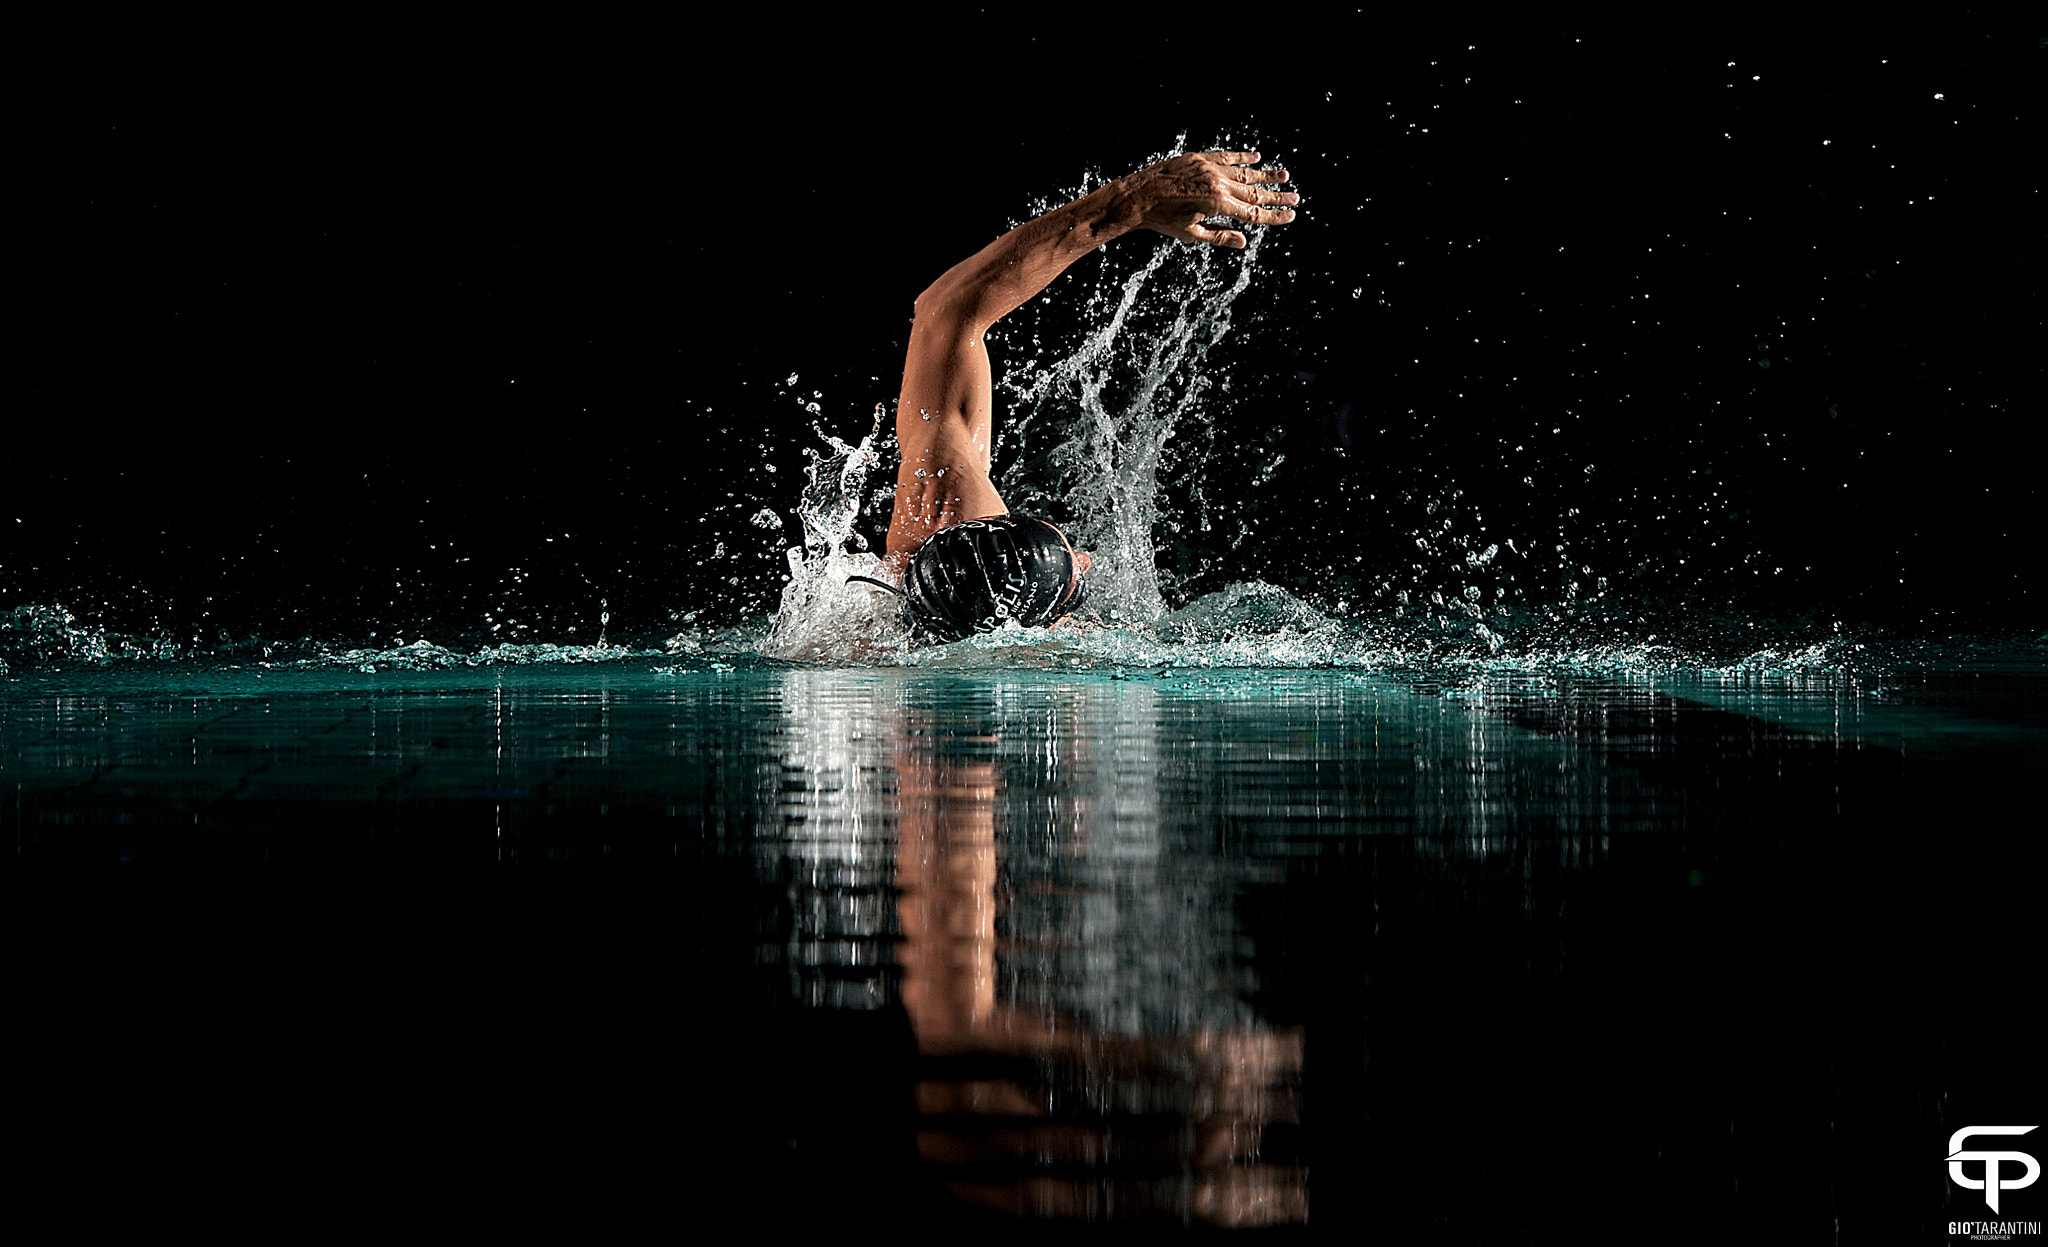 Photograph Swimming by Giò Tarantini on 500px